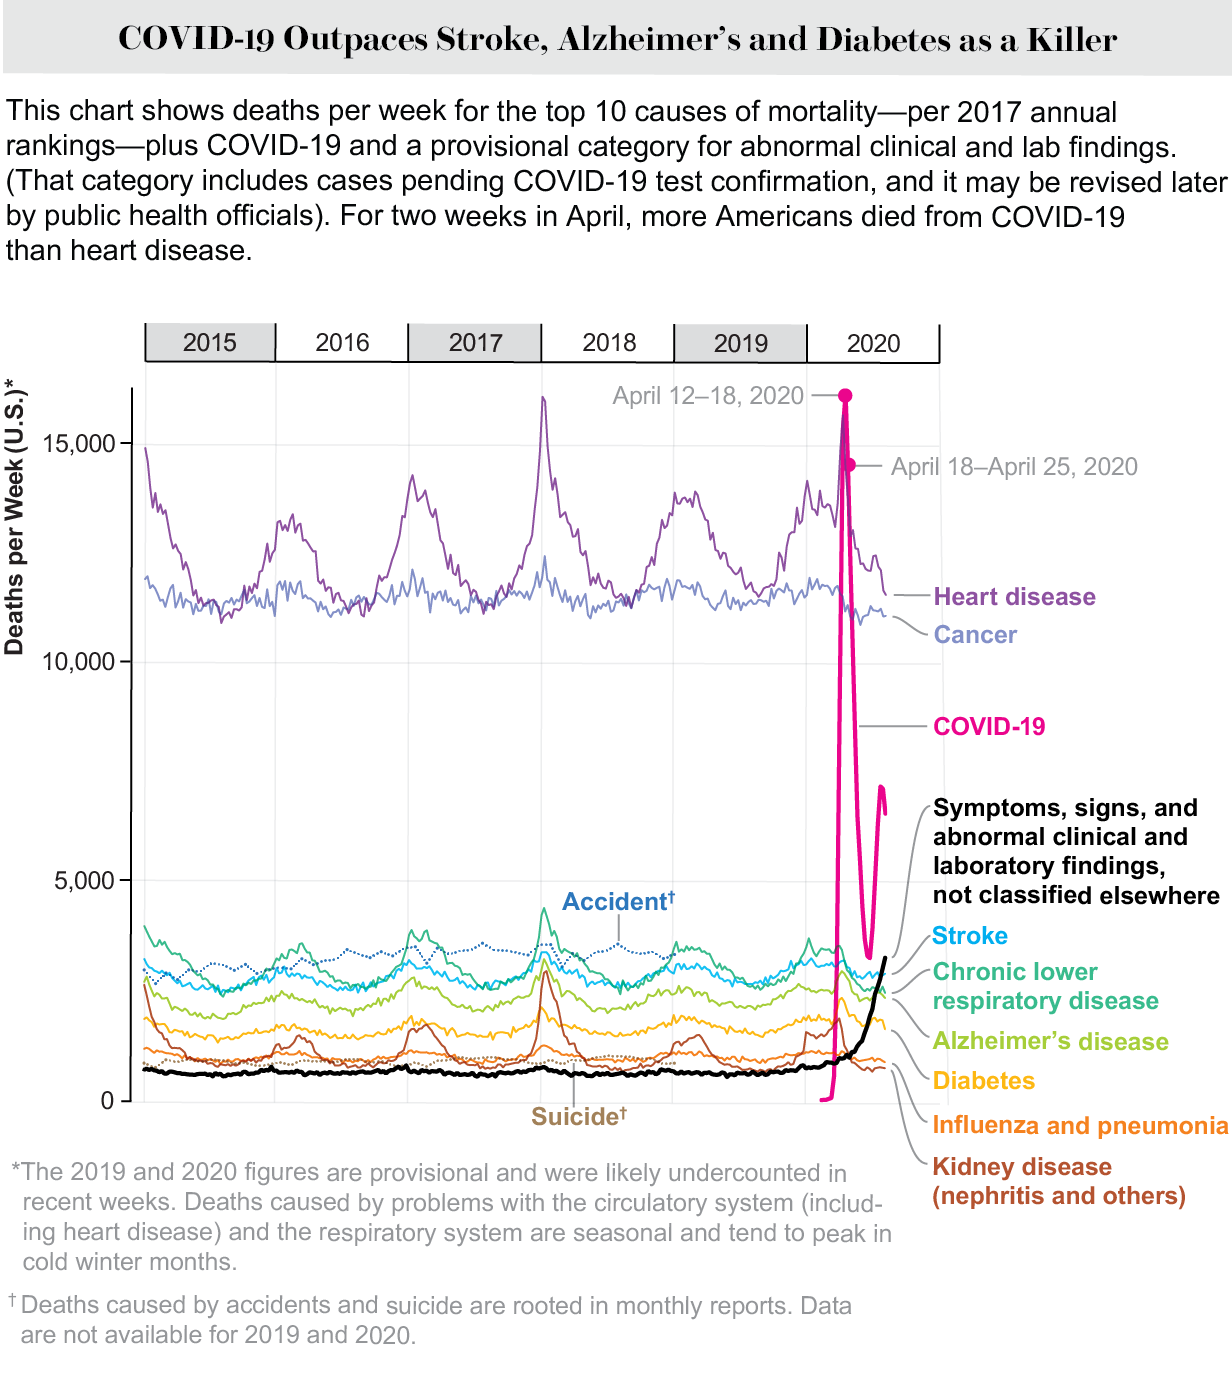 Chart shows deaths per week, broken down by cause of death. For two weeks in April, more Americans died from COVID-19 than any other single cause.